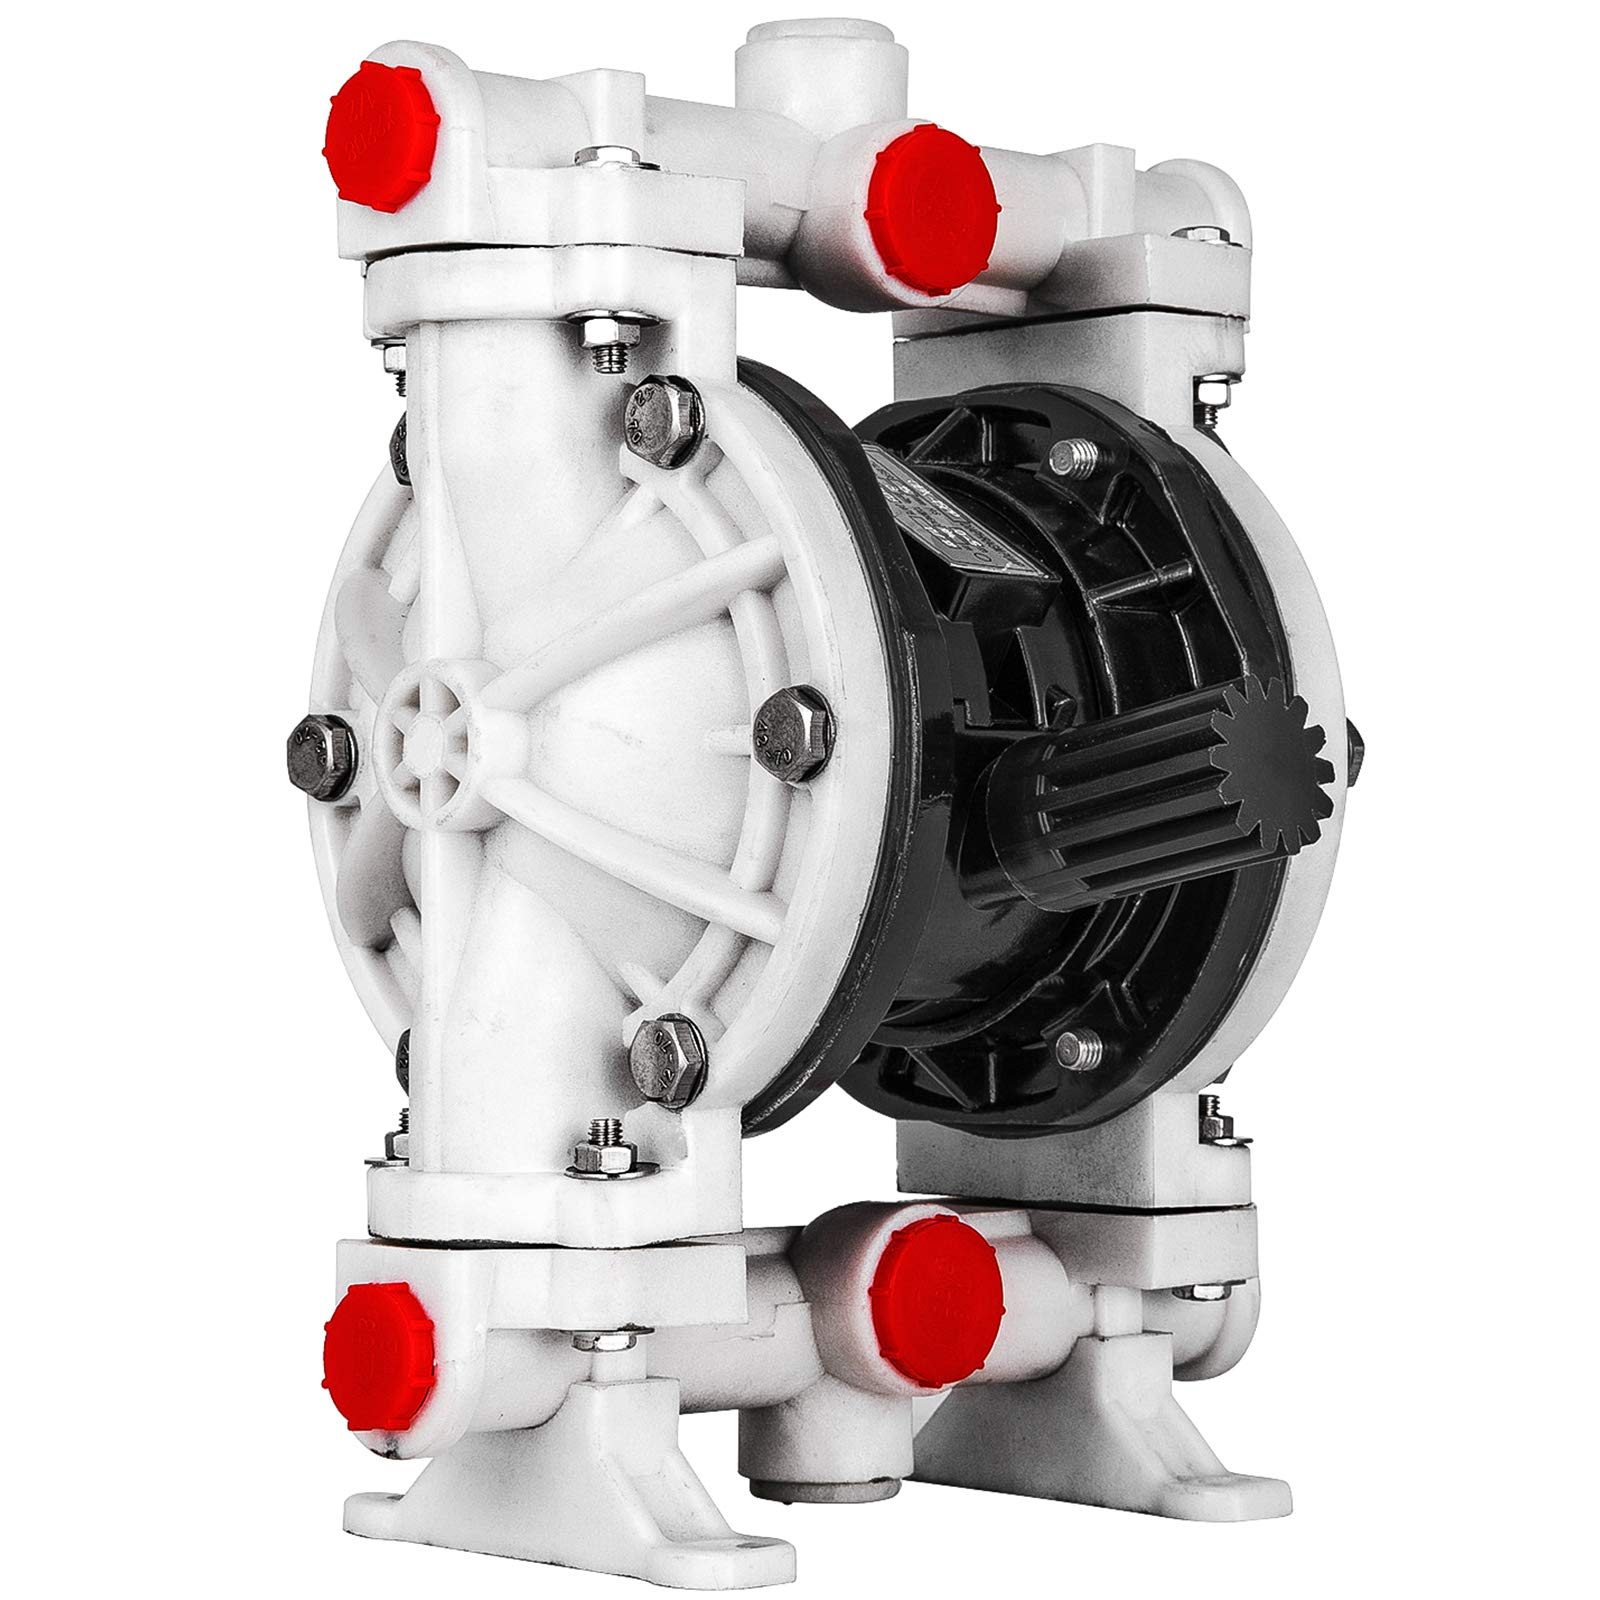 Happybuy Air-Operated Double Diaphragm Pump 0.5 inch Inlet Outlet Polypropylene 12 GPM Max 120PSI for Chemical Industrial Use, QBK-15PP